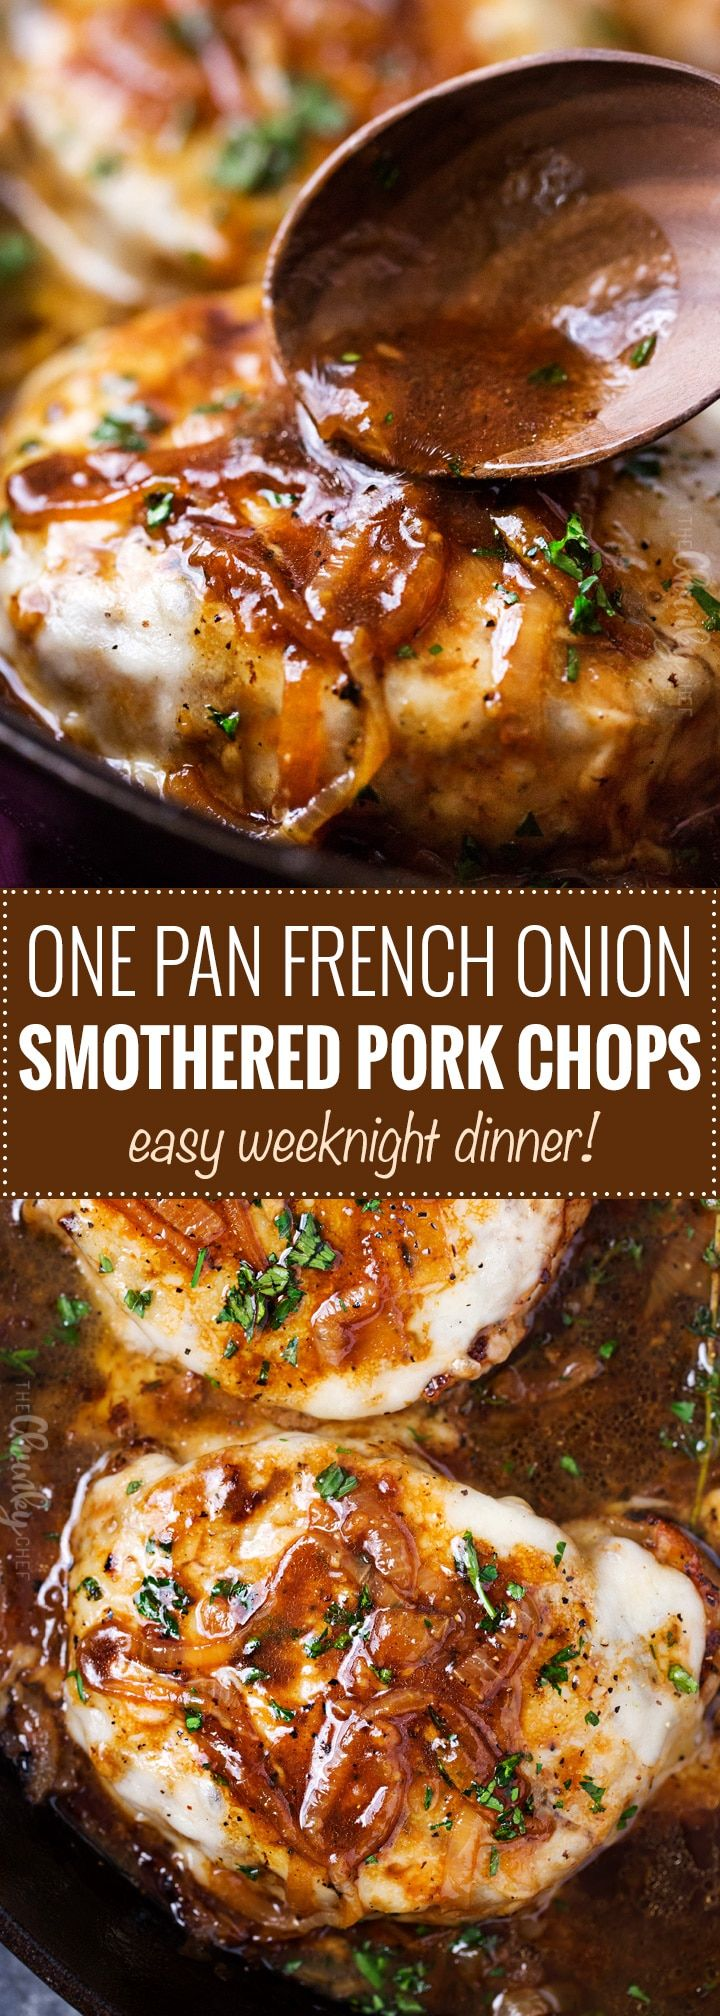 One Pan French Onion Smothered Pork Chops | Juicy pan-seared pork chops, smothered in caramelized onion sauce and 2 kinds of gooey cheese. It's easy to break out of a dinner rut with this fun weeknight meal! | The Chunky Chef